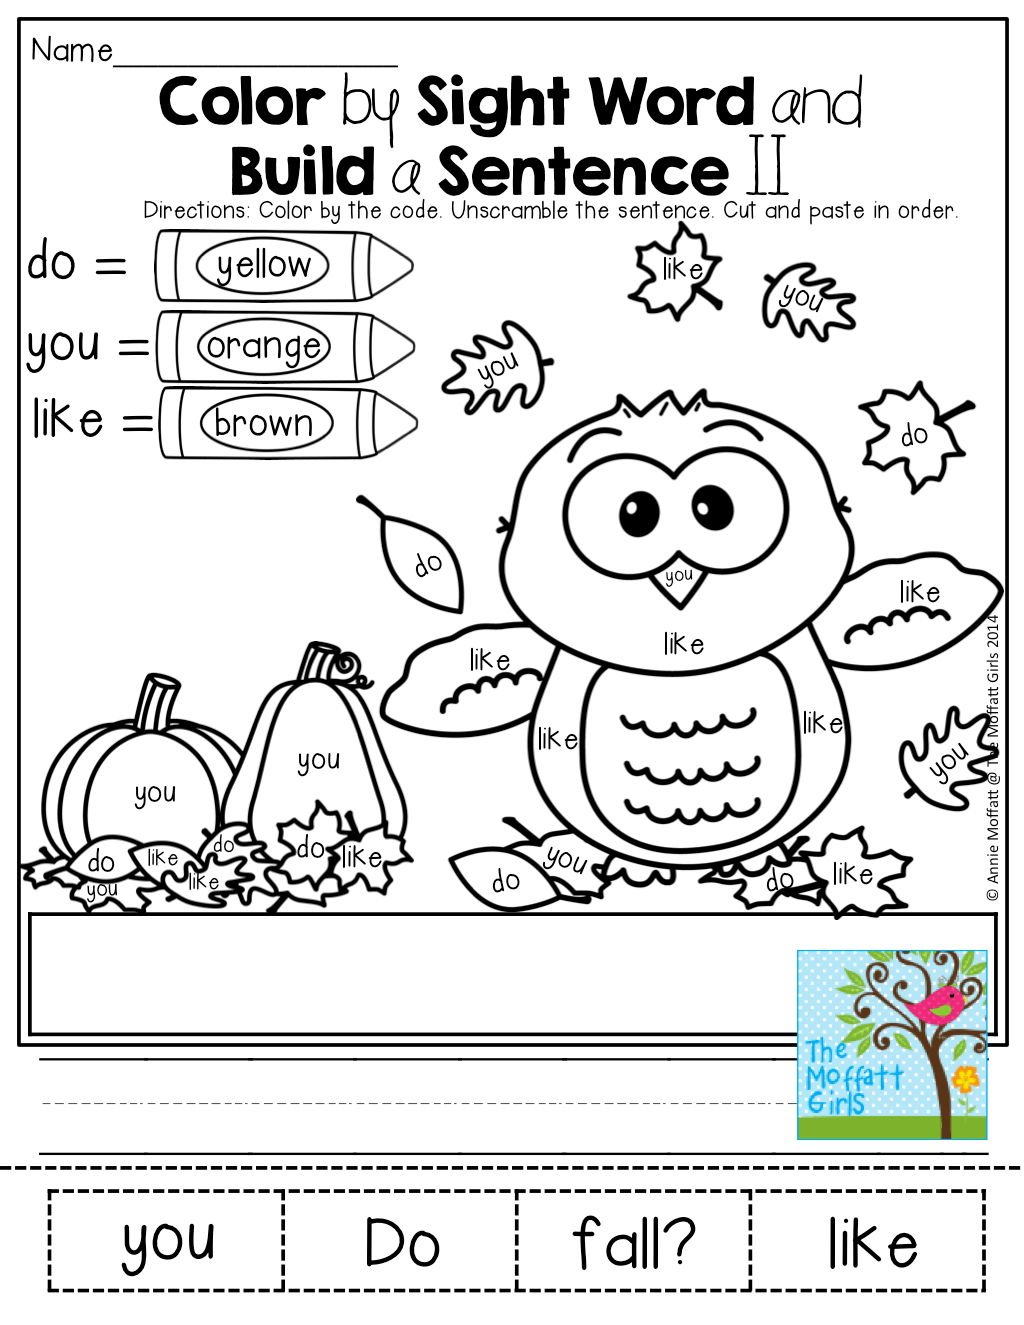 Color By Sight Words And Unscramble A Simple Sentence